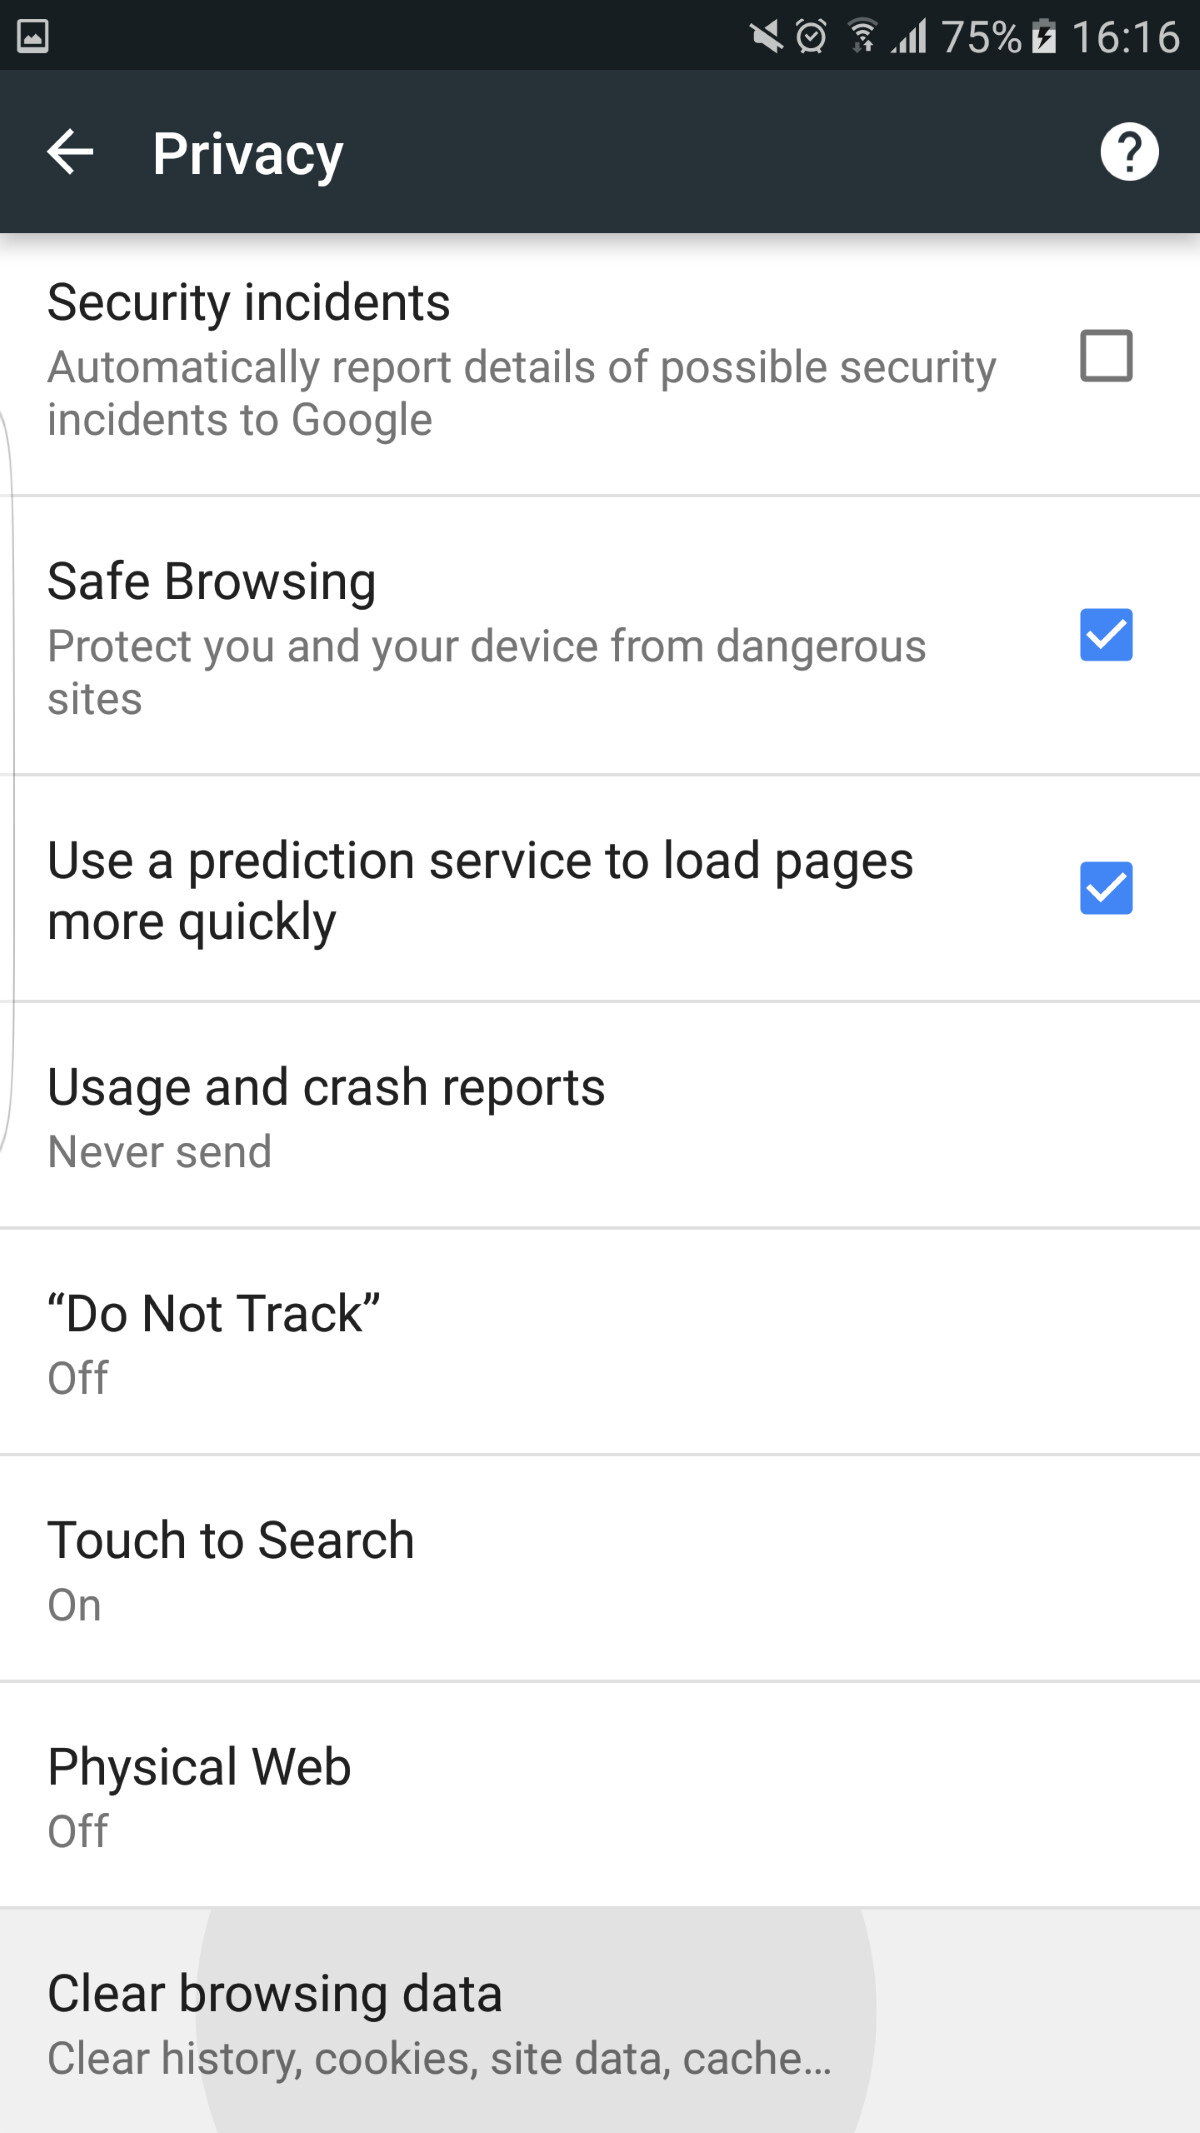 Blackberry Z10 How To Delete Internet History + Google Search History 5 Of  The Bestic Book Apps For Android And Ios